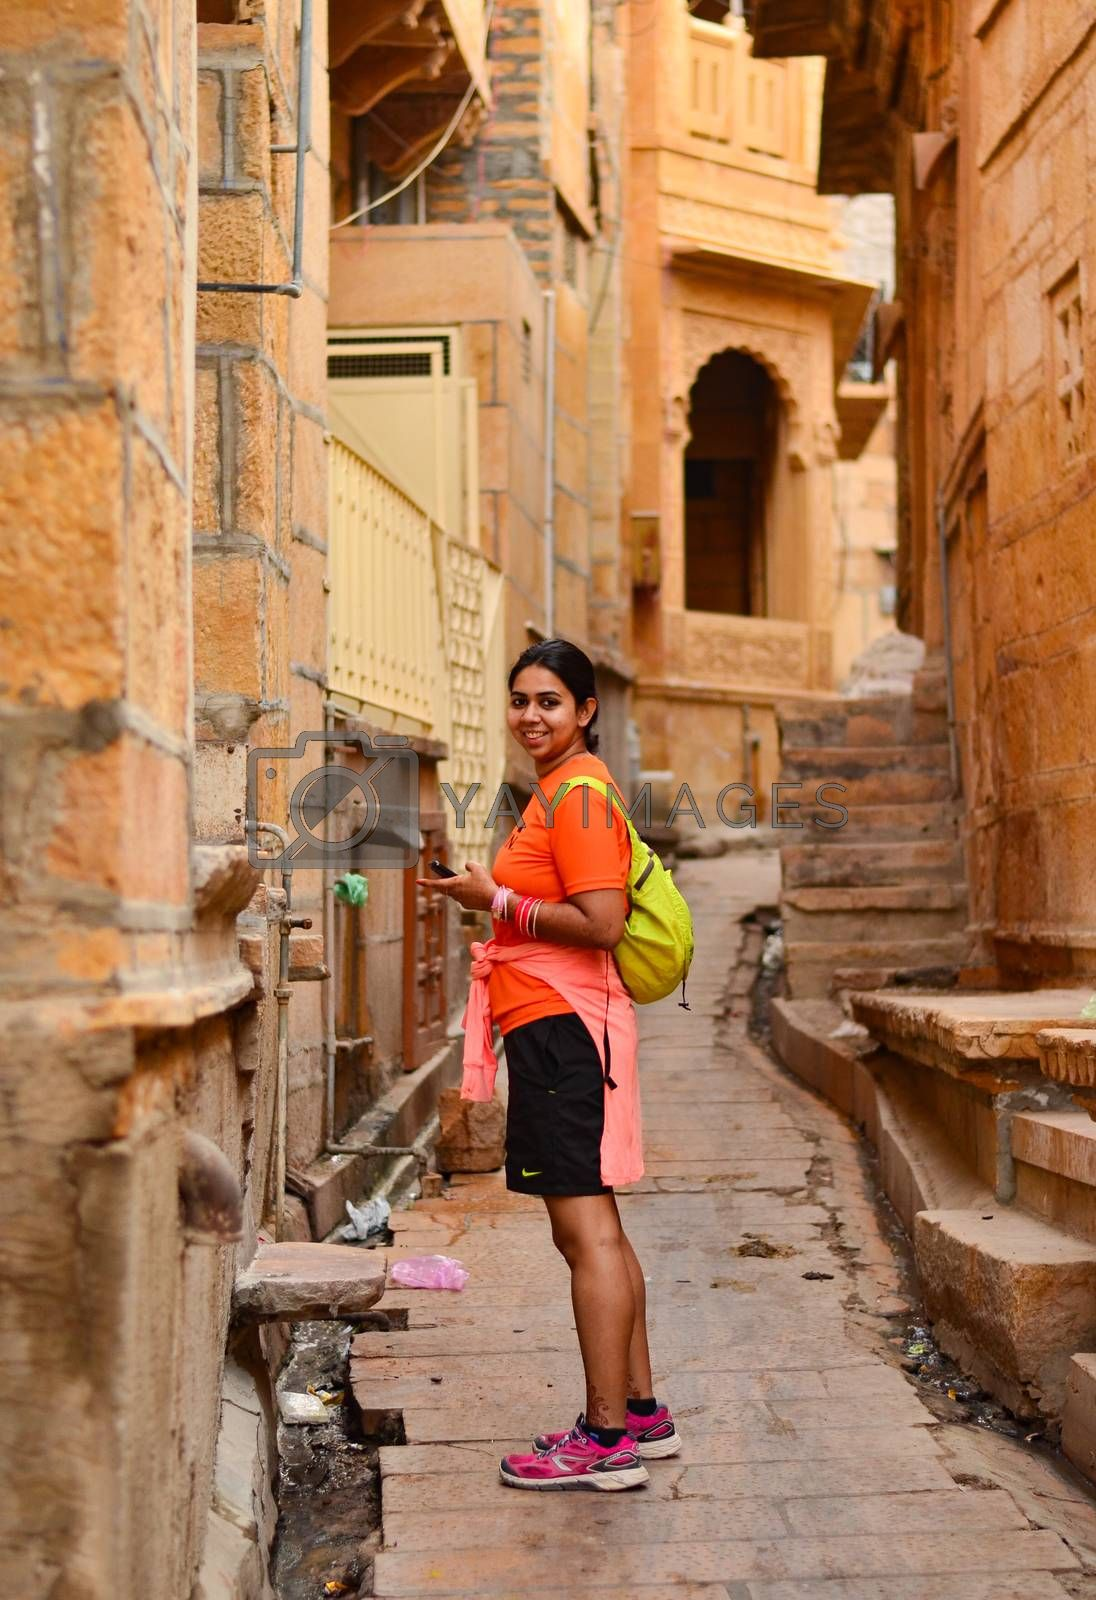 Young woman posing in the by-lanes of Jaisalmer, Rajasthan. Jaisalmer is also known as the golden city because of the Jaisalmer Fort which is golden in colour.